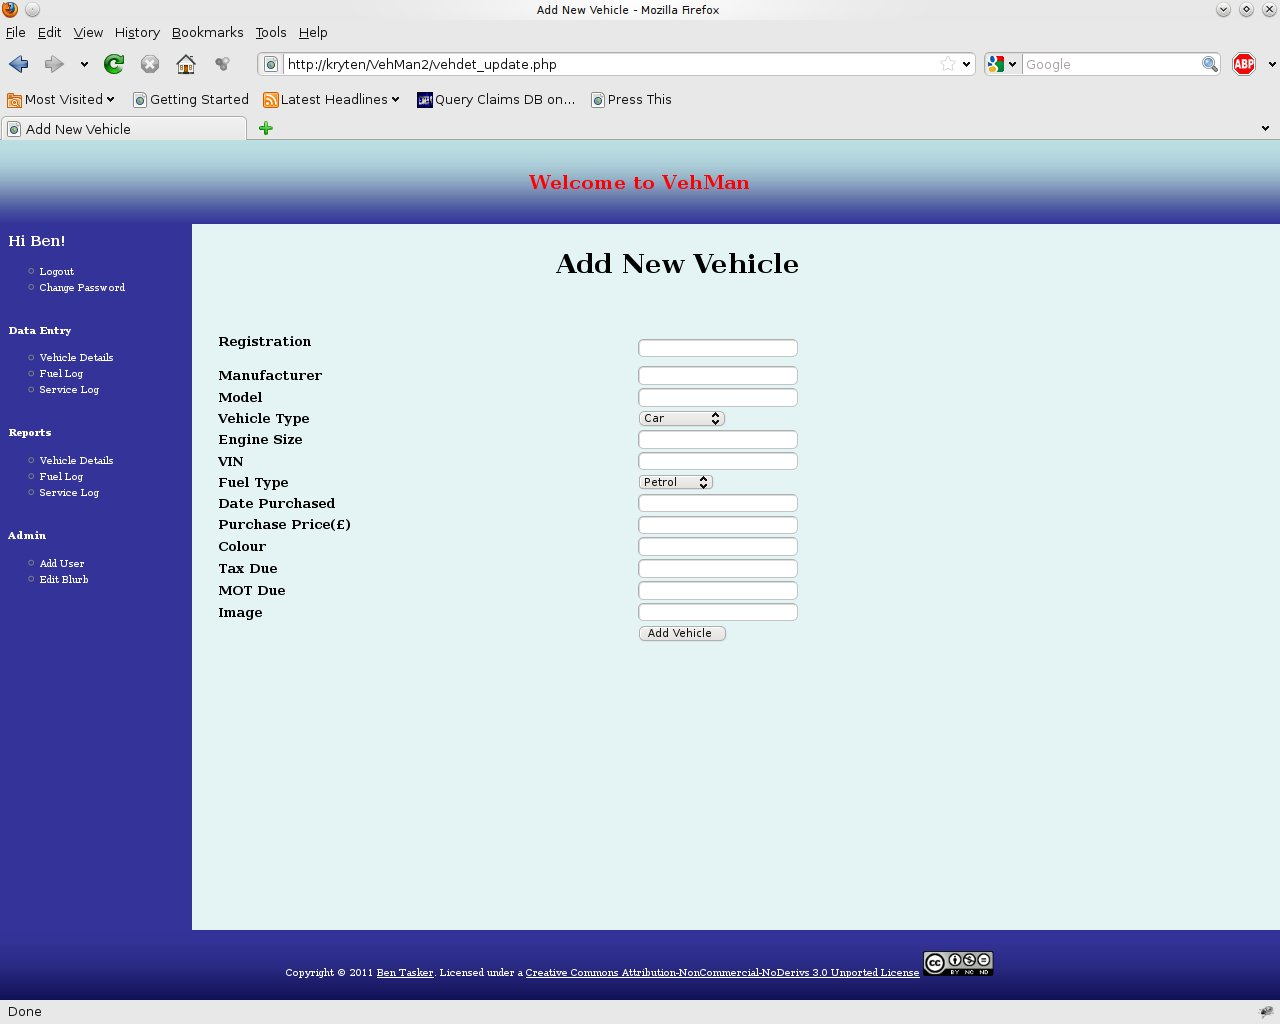 The Vehicle Data Input Form